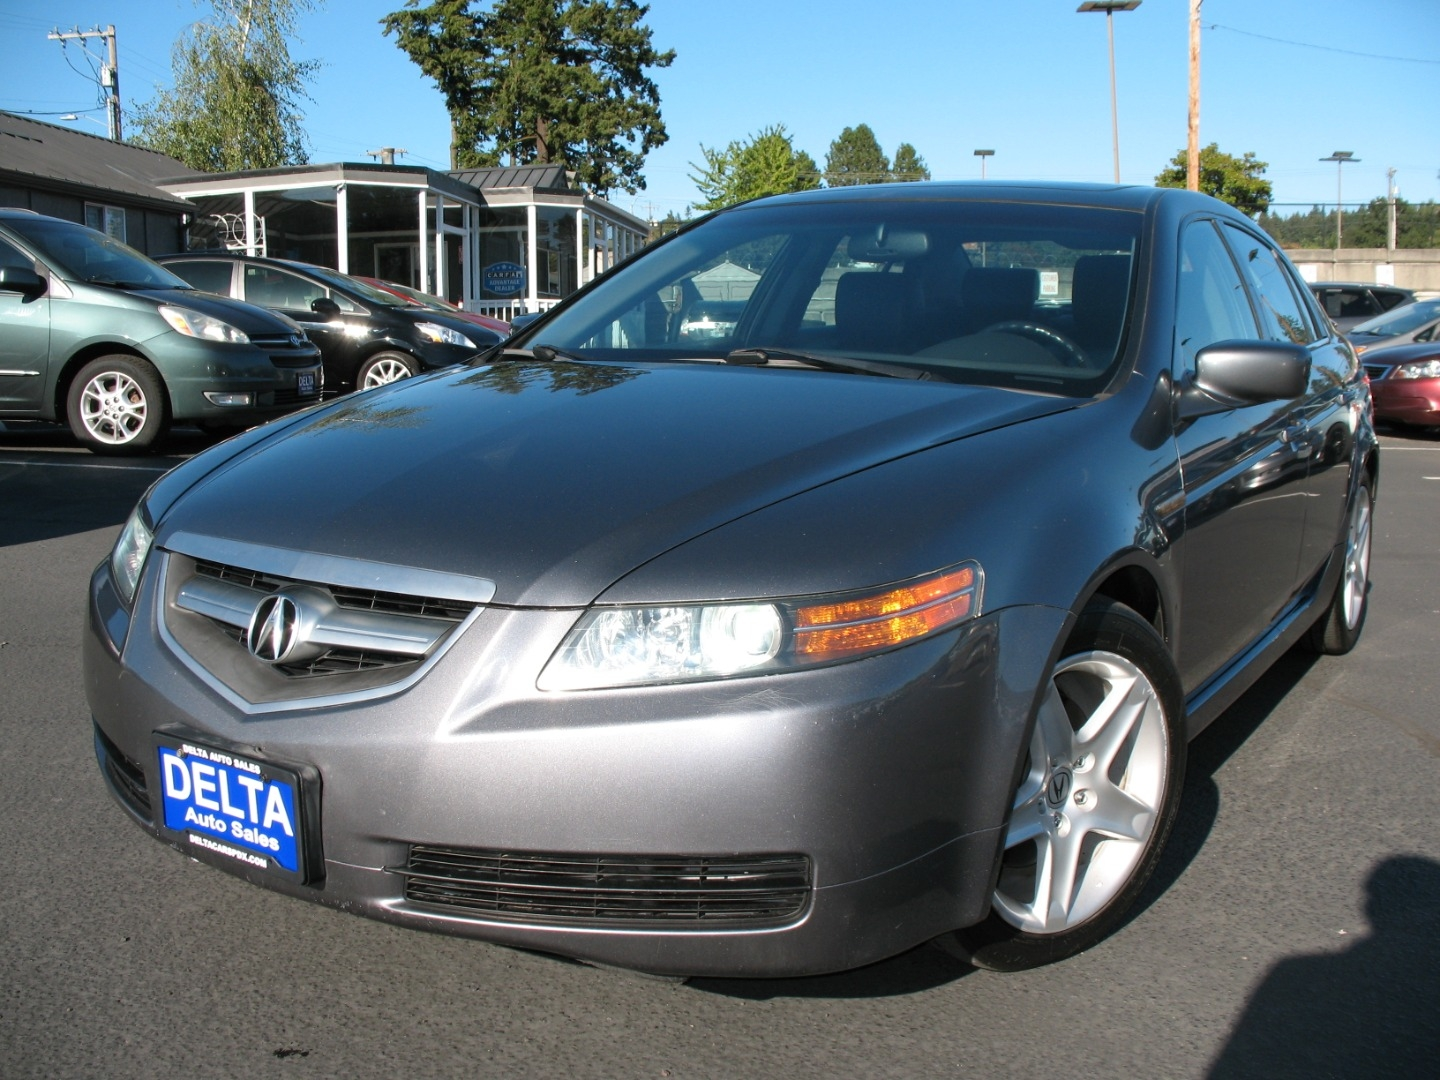 2005 Acura 3 2 Tl By Honda Navigation Resent Timing Belt Low Miles Delta Auto Sales Dealership In Milwaukie